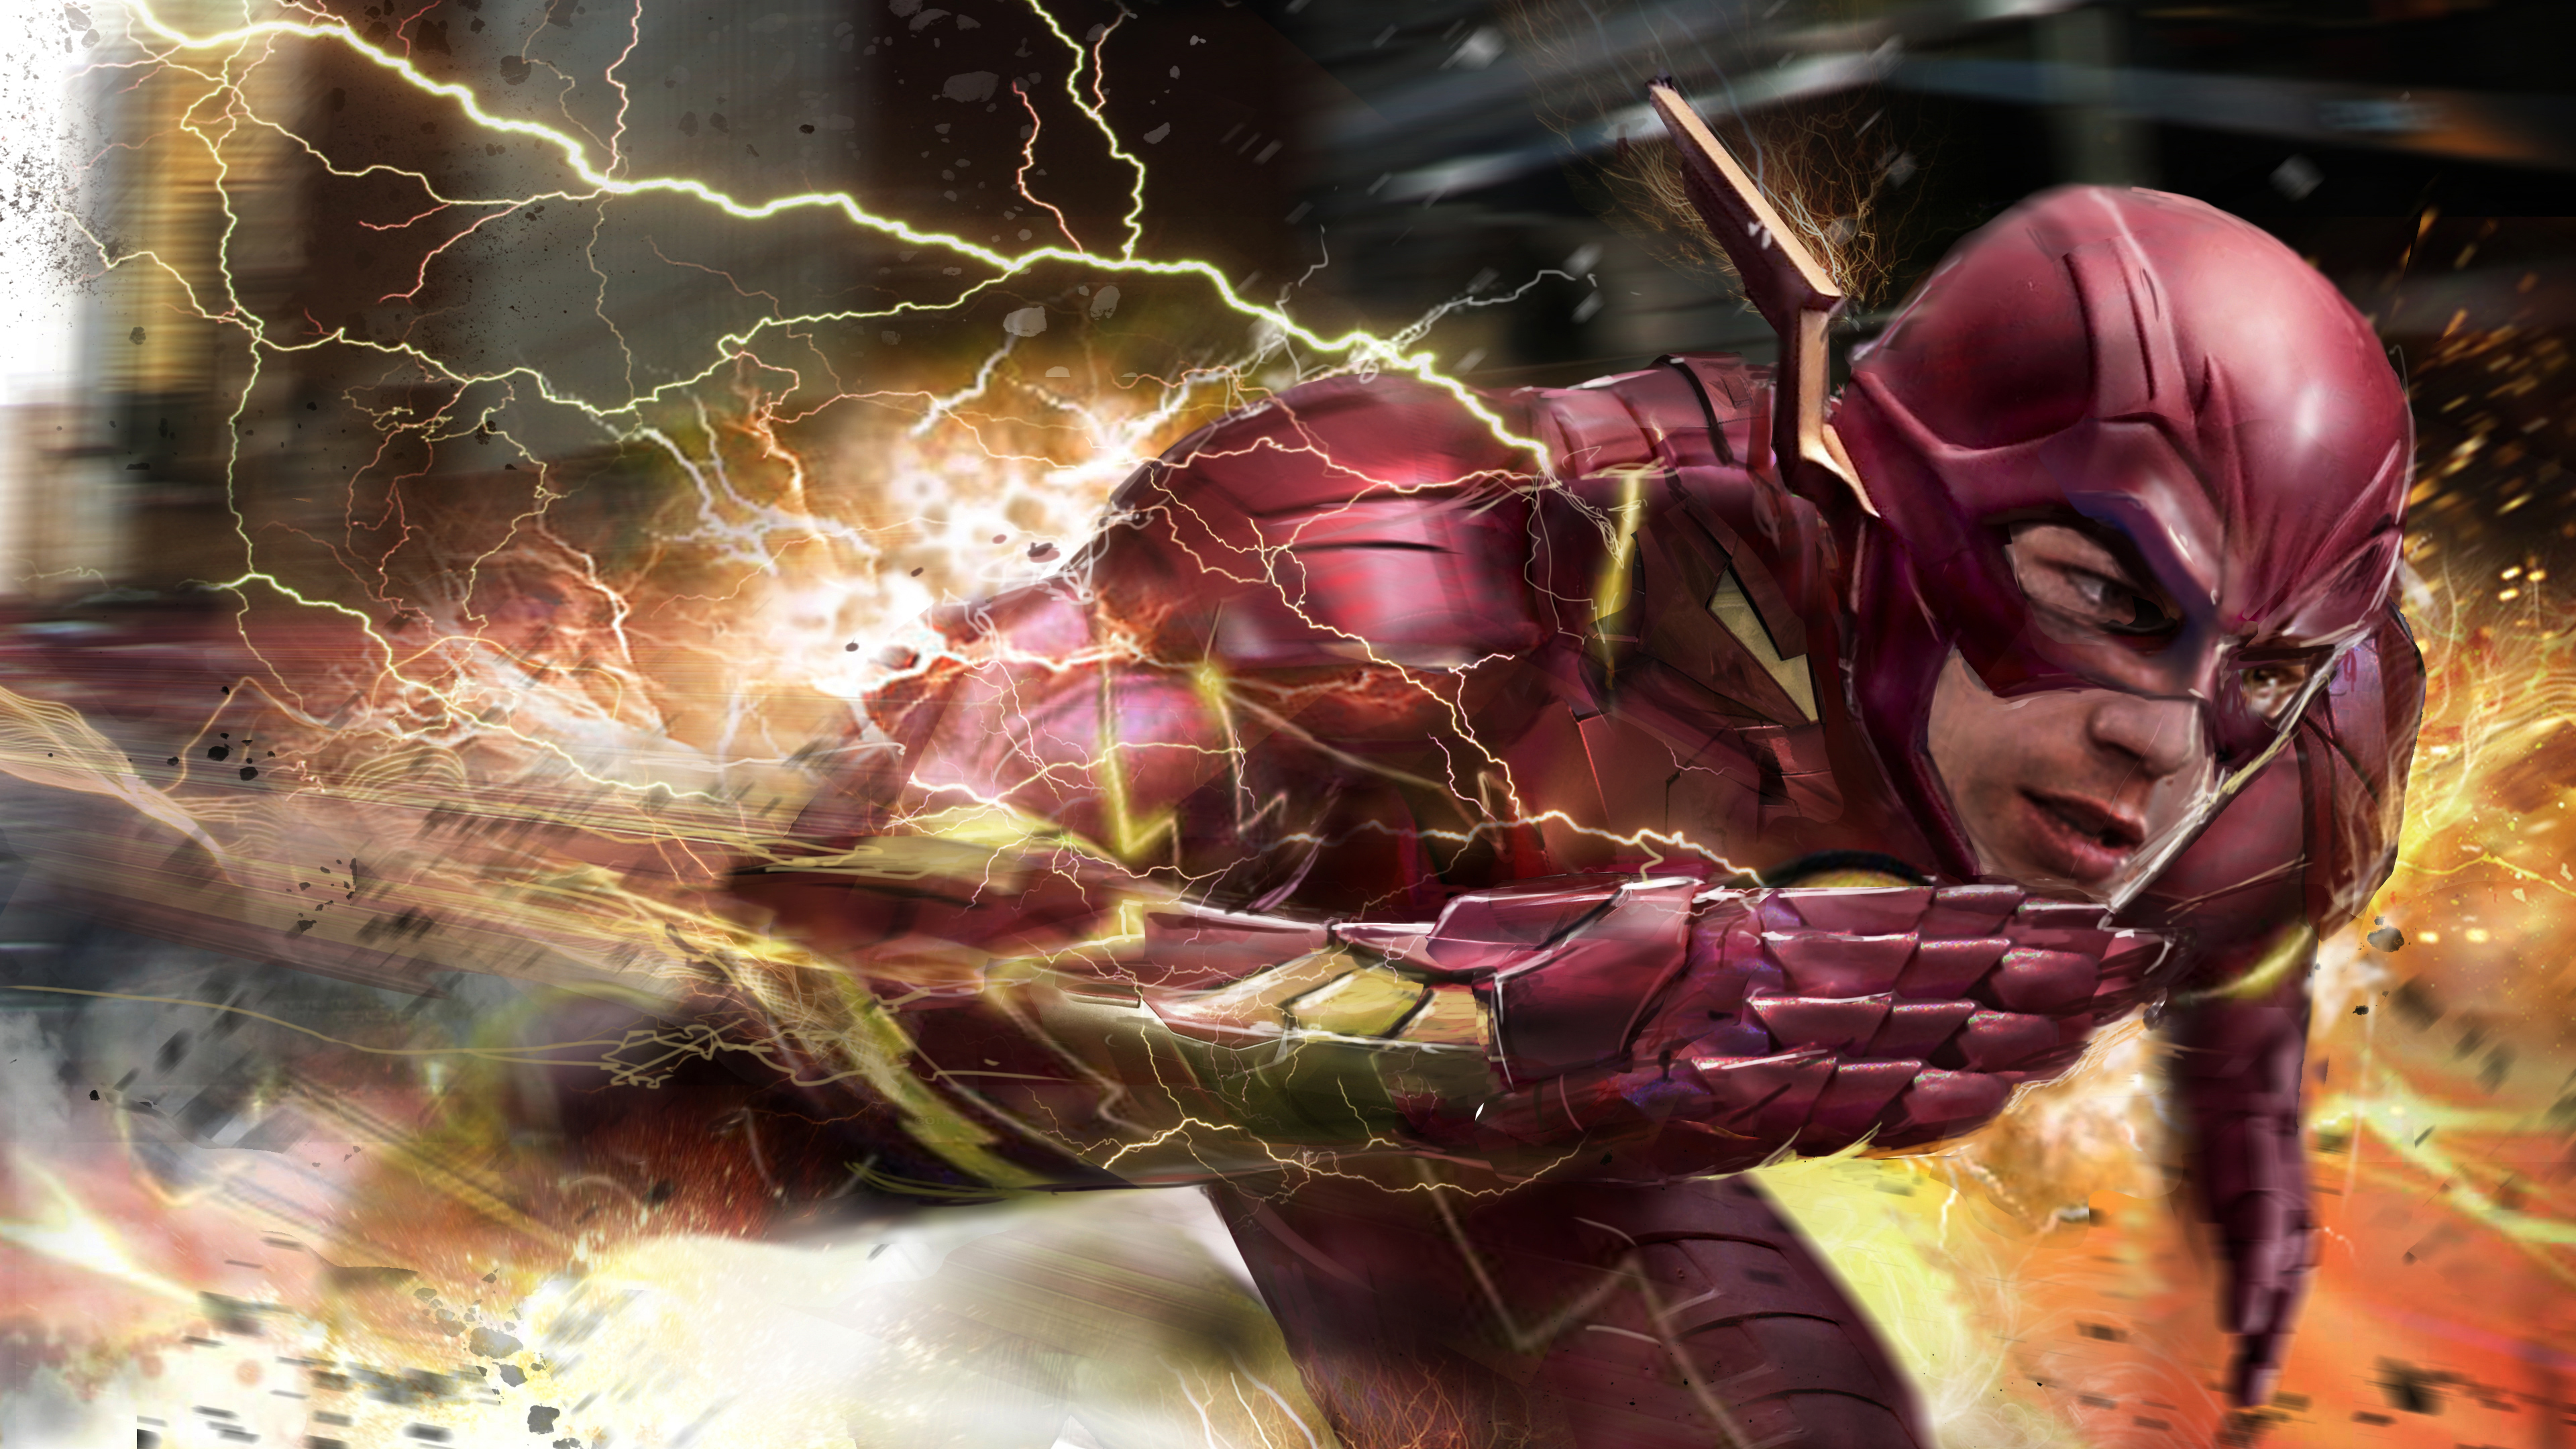 flash the man with speed 1536522795 - Flash The Man With Speed - the flash wallpapers, superheroes wallpapers, hd-wallpapers, flash wallpapers, deviantart wallpapers, artwork wallpapers, artist wallpapers, 4k-wallpapers